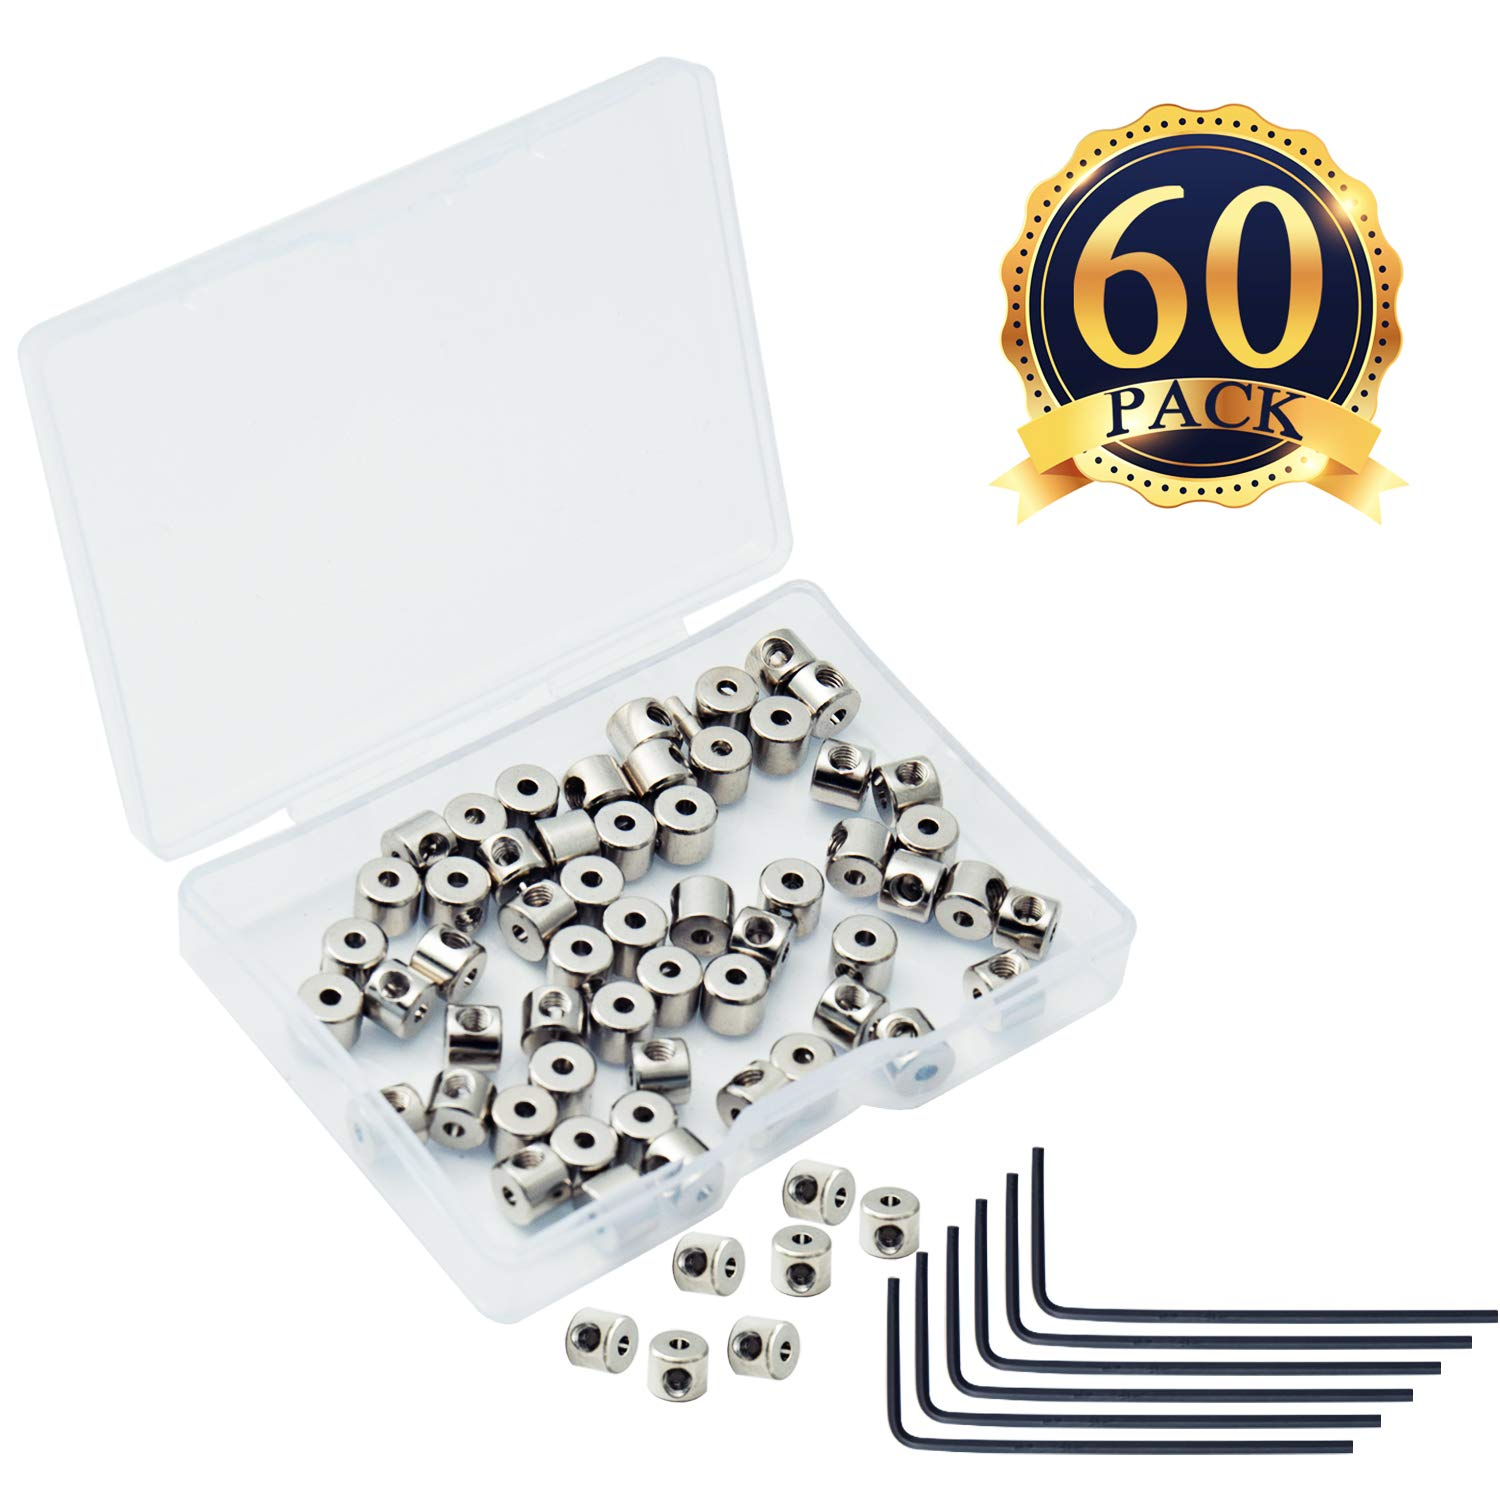 SUBANG 30 Pieces Pin Keepers Pin Locks Pin Backs Locking Clasp Locking Pin Keeper Backs with 3 Wrench All in Storage Case,5mm x 6mm